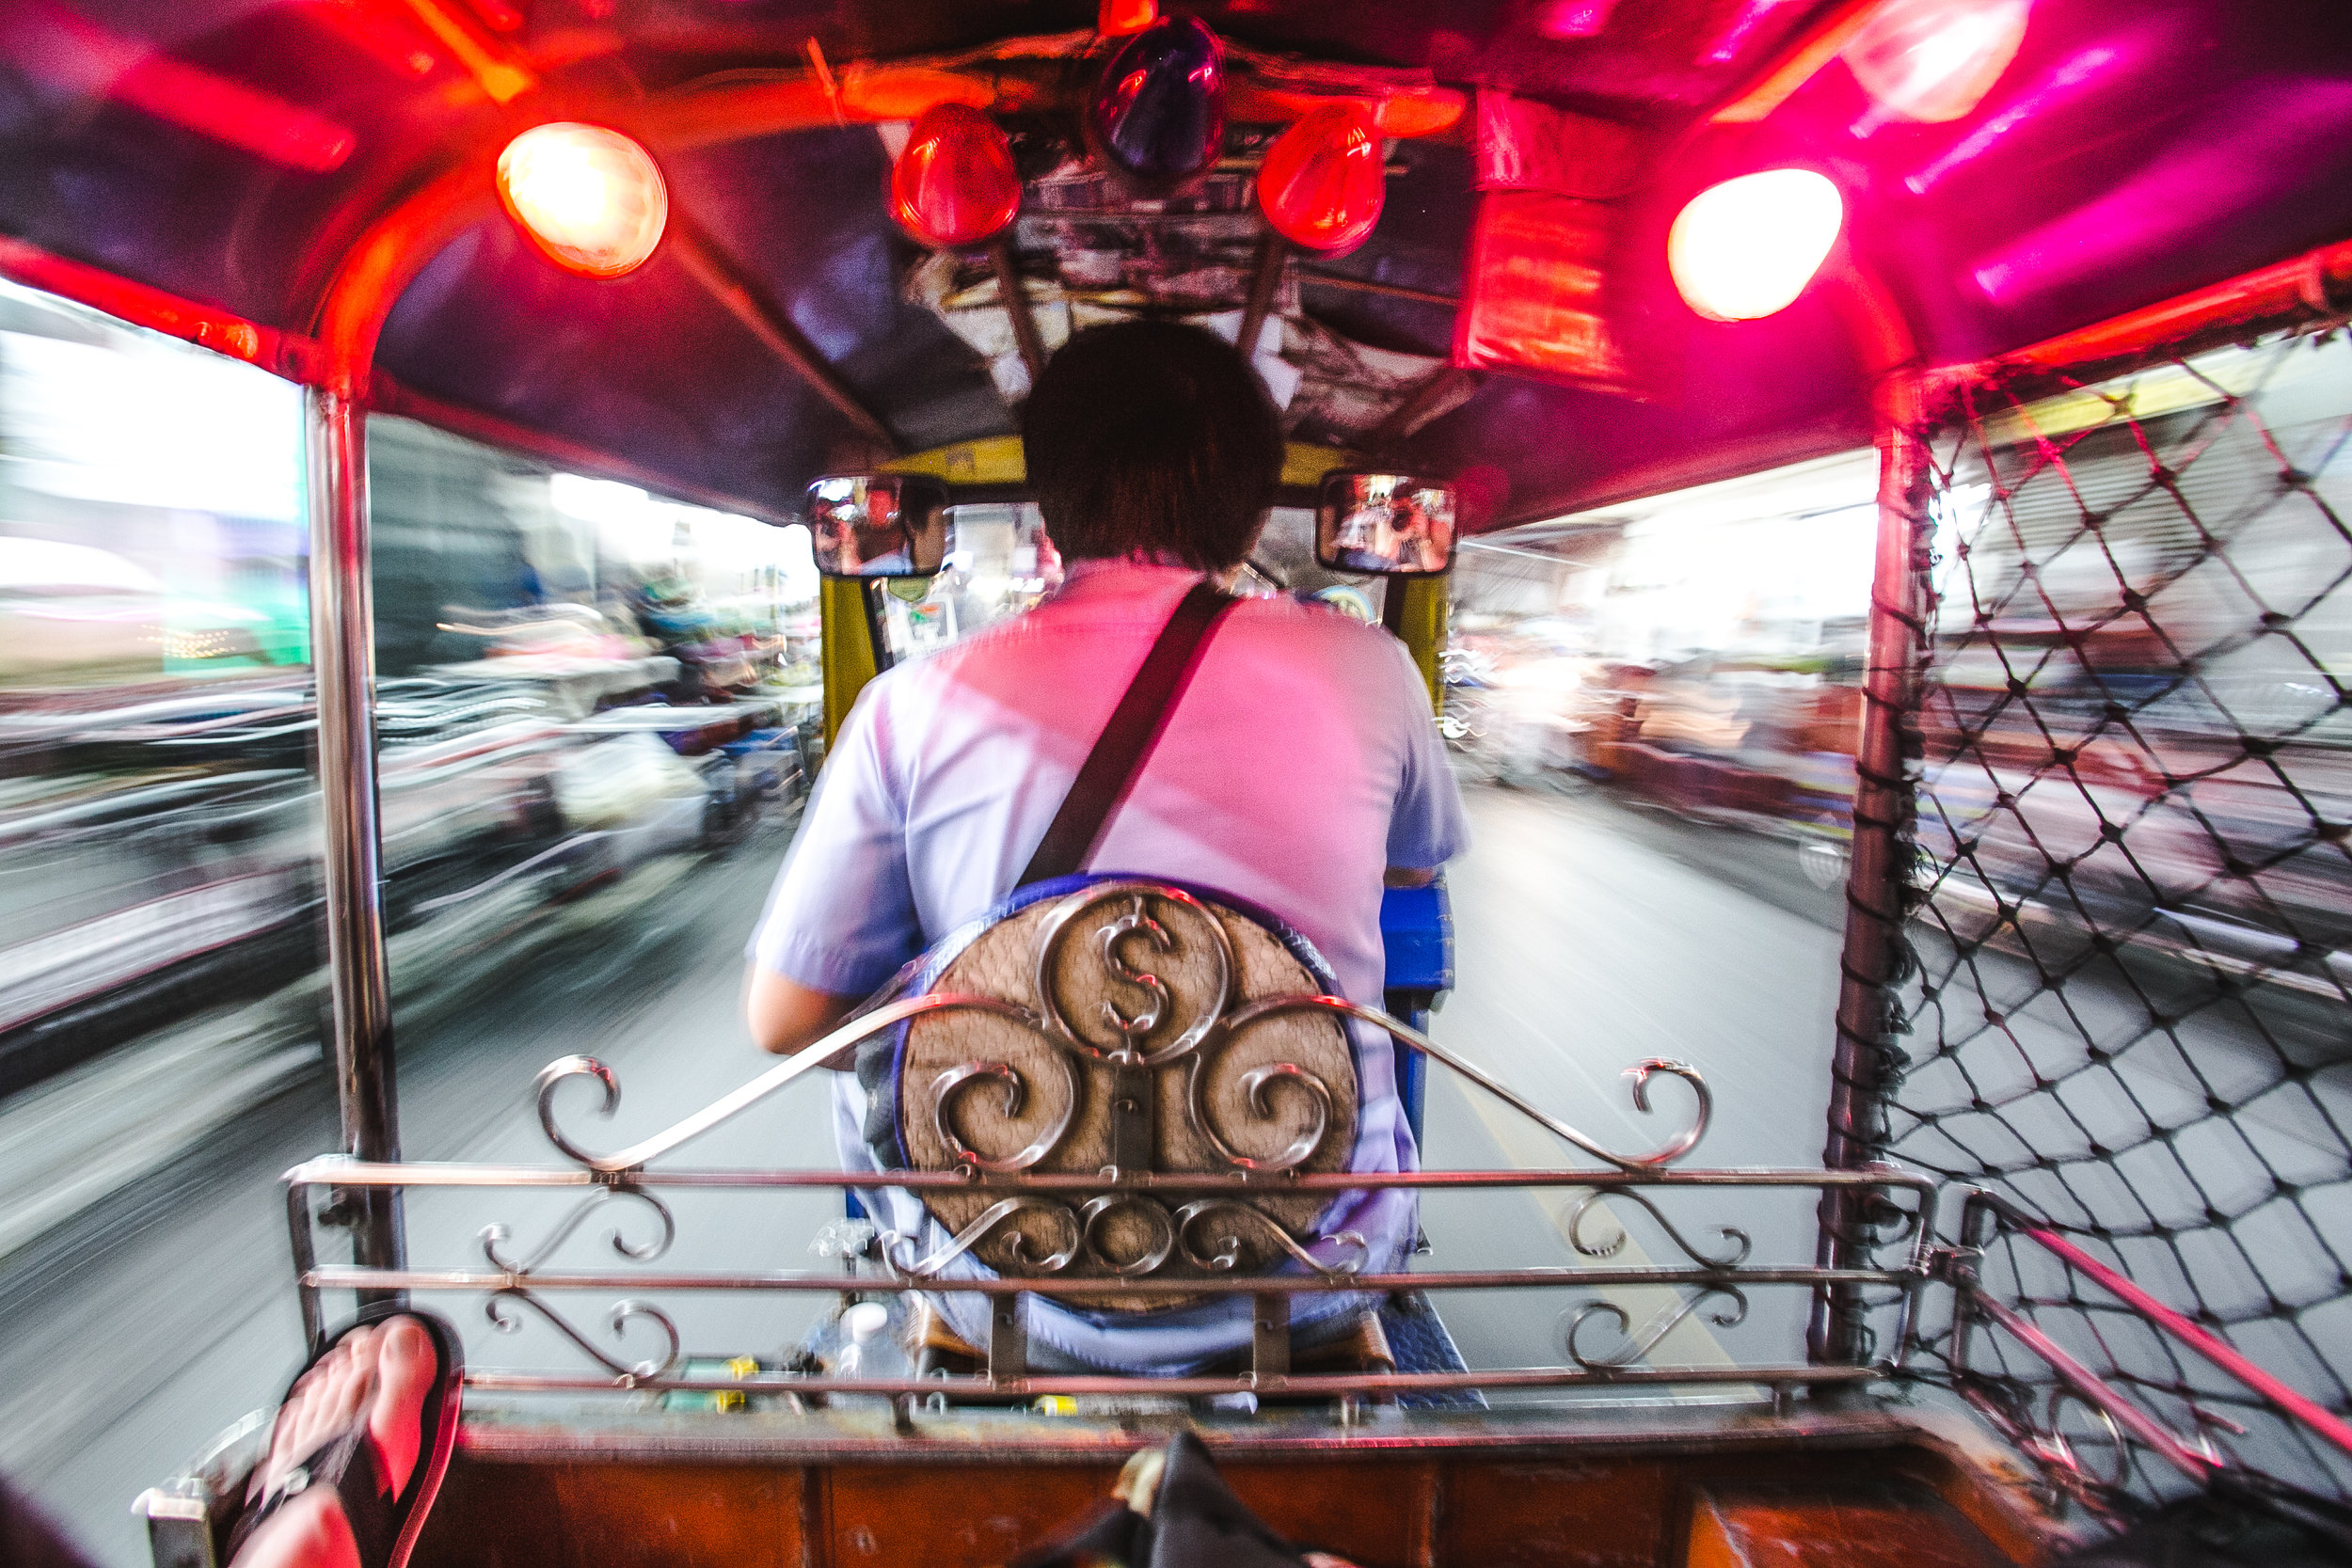 "1:05am -  Likto, 28, drives through the Khlong Tan Nuea District in Bangkok. He has been driving for 10 years, and says he enjoys it. ""Some day the money very good, some day very bad. I like it though, good job here in Bangkok."" Likto's father owns the cart - which he and his brothers share during the week. The cart cost his family around 200,000 baht ($6300usd), and Likto makes between 500-800 ($10-20usd) baht per night on average. On this day, he had been driving for 10+ hours, and made 300 baht ($10usd)."